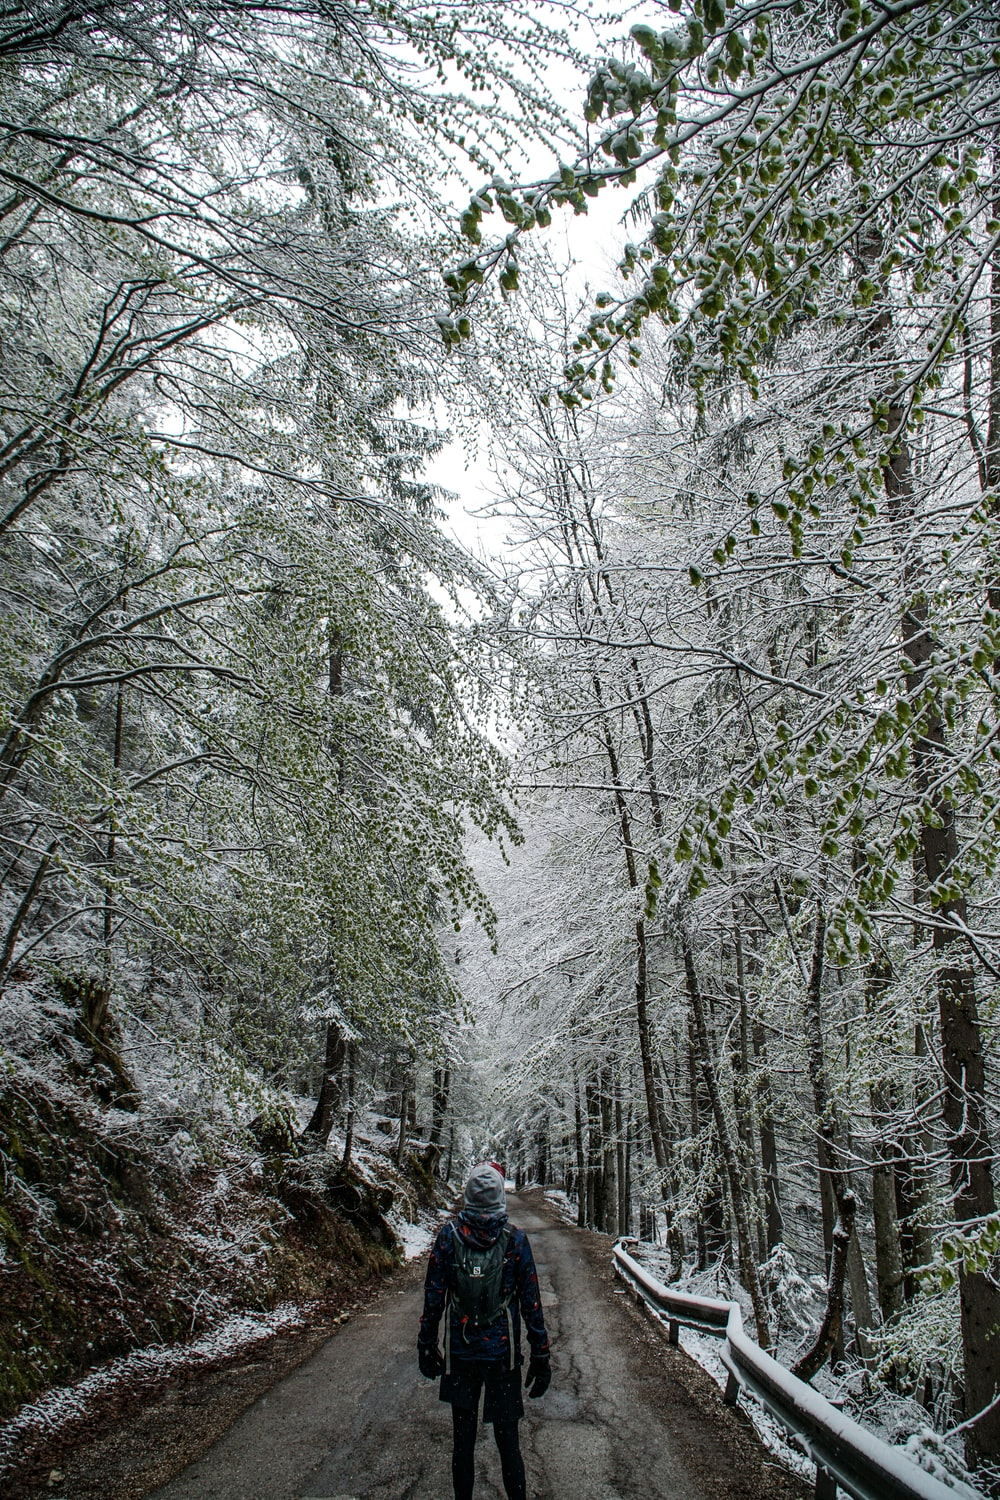 man with backpack standing on walkway between snow-covered trees